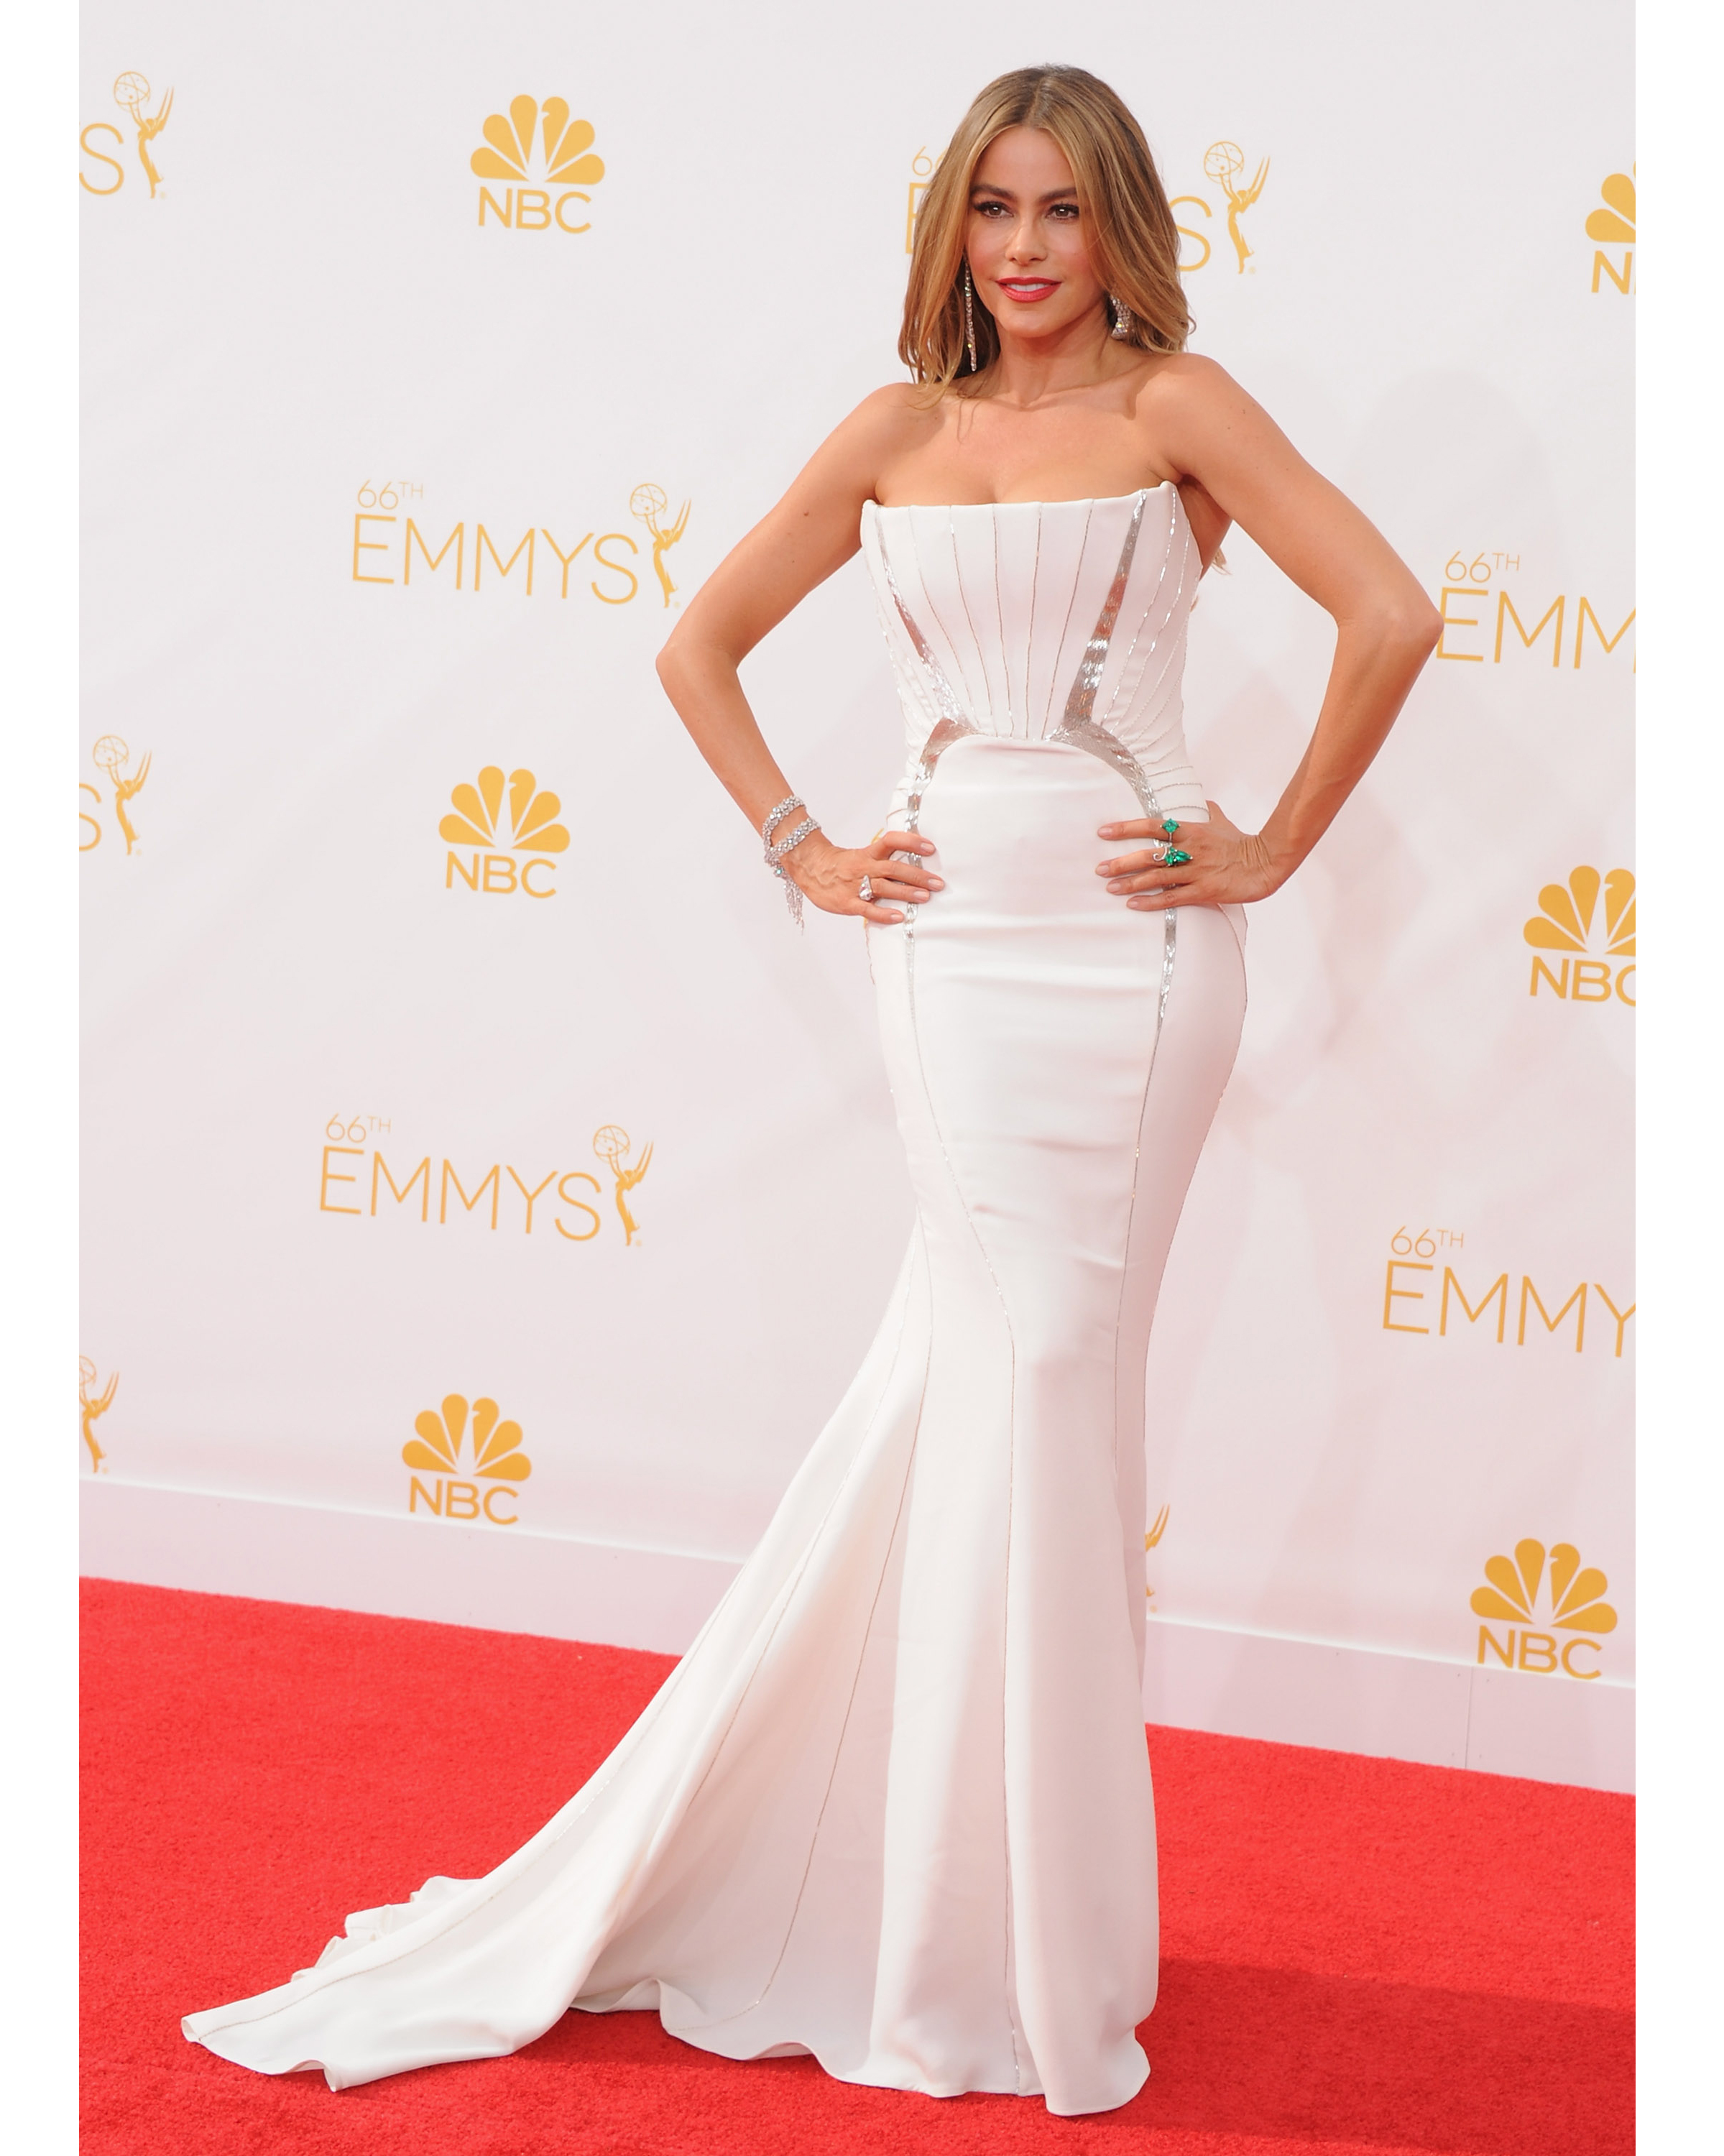 66th Annual Primetime Emmy Awards